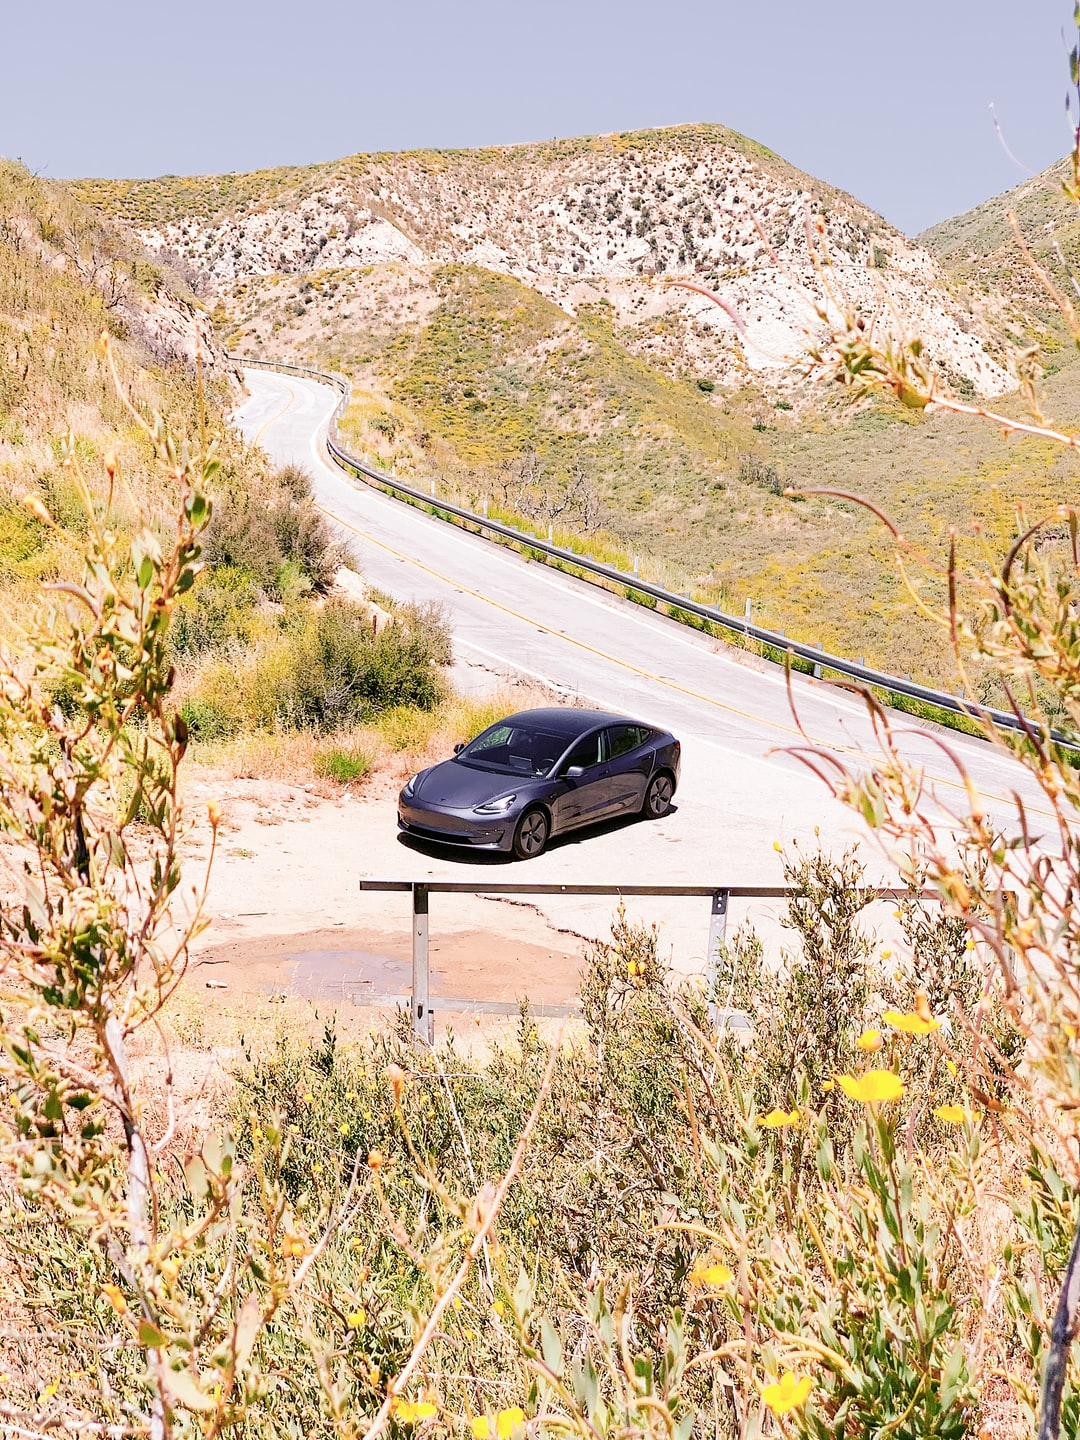 Tesla Model 3 Gray in Desert by Road looked at from a hill with mountains in background